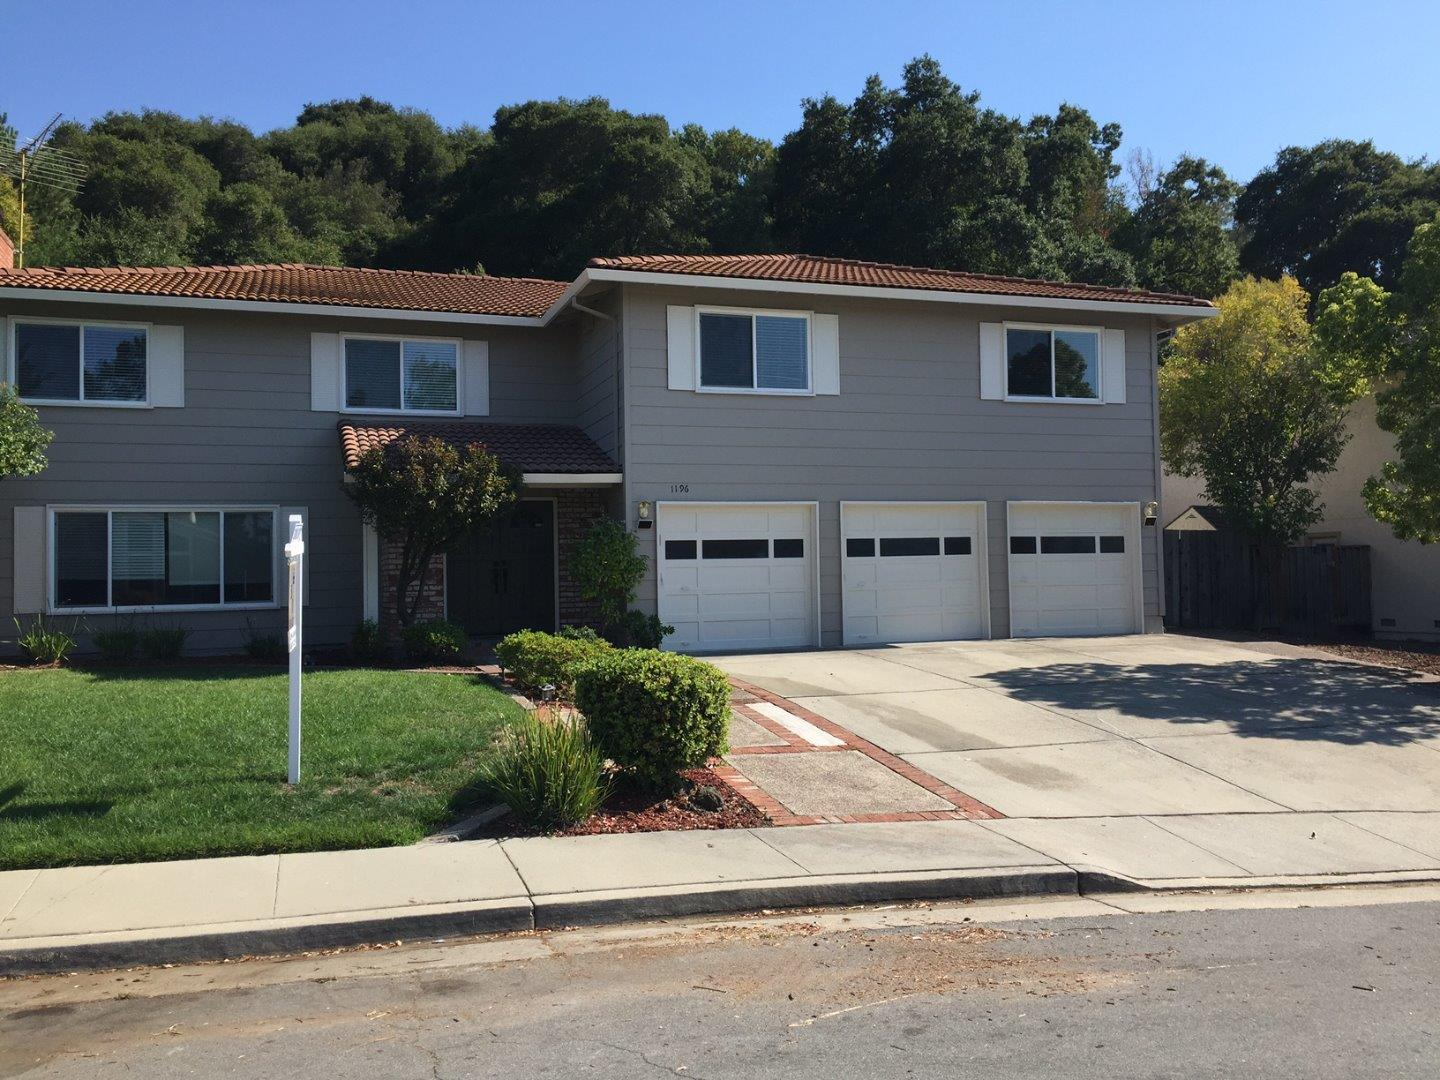 Single Family Home for Rent at 1196 Nikette Way San Jose, California 95120 United States